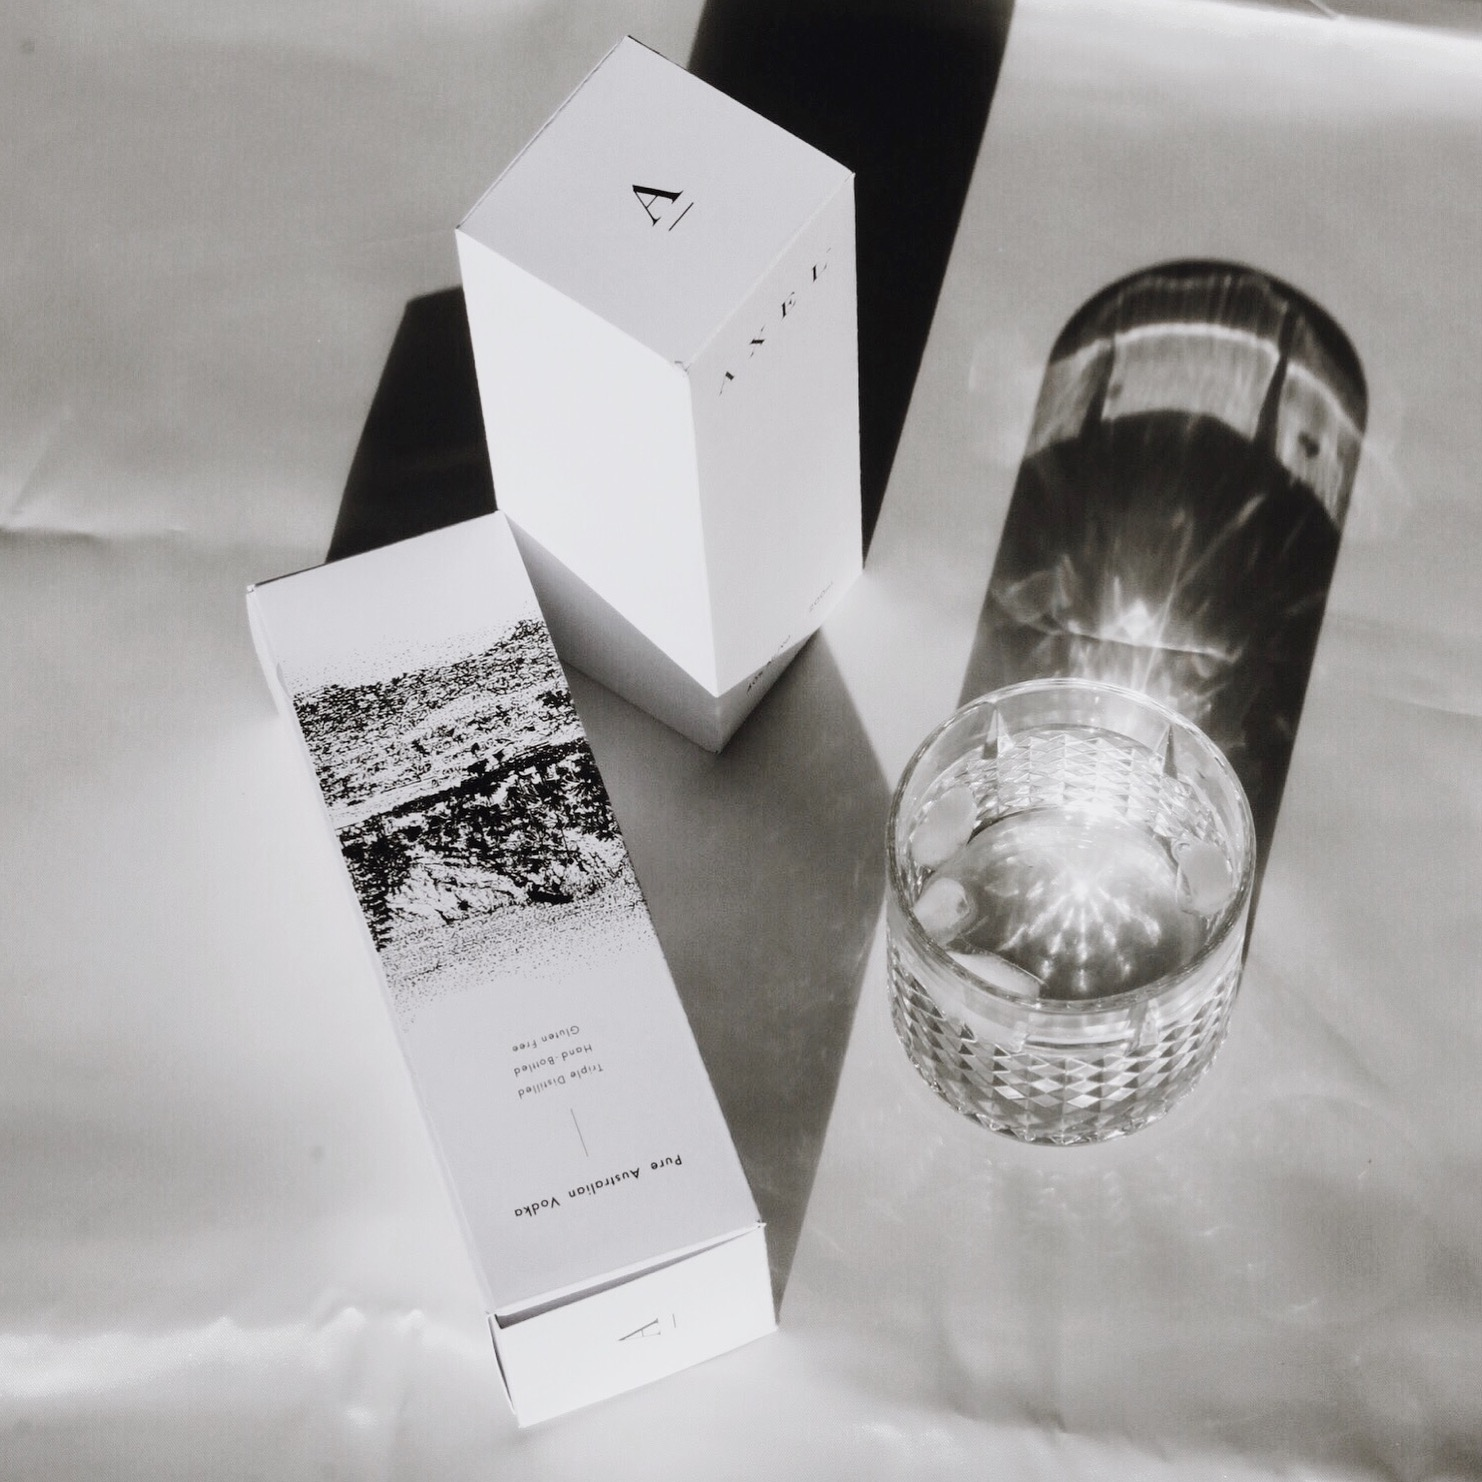 Design - Our packaging features Indigenous Artwork by Founder Remy Crick, inspired by the South Coast of New South Wales, Australia where our vodka is distilled. Axel Vodka was designed with sustainability in mind, as our bottles are recyclable and the use of 'single-use plastics' in our packaging kept to a minimum.